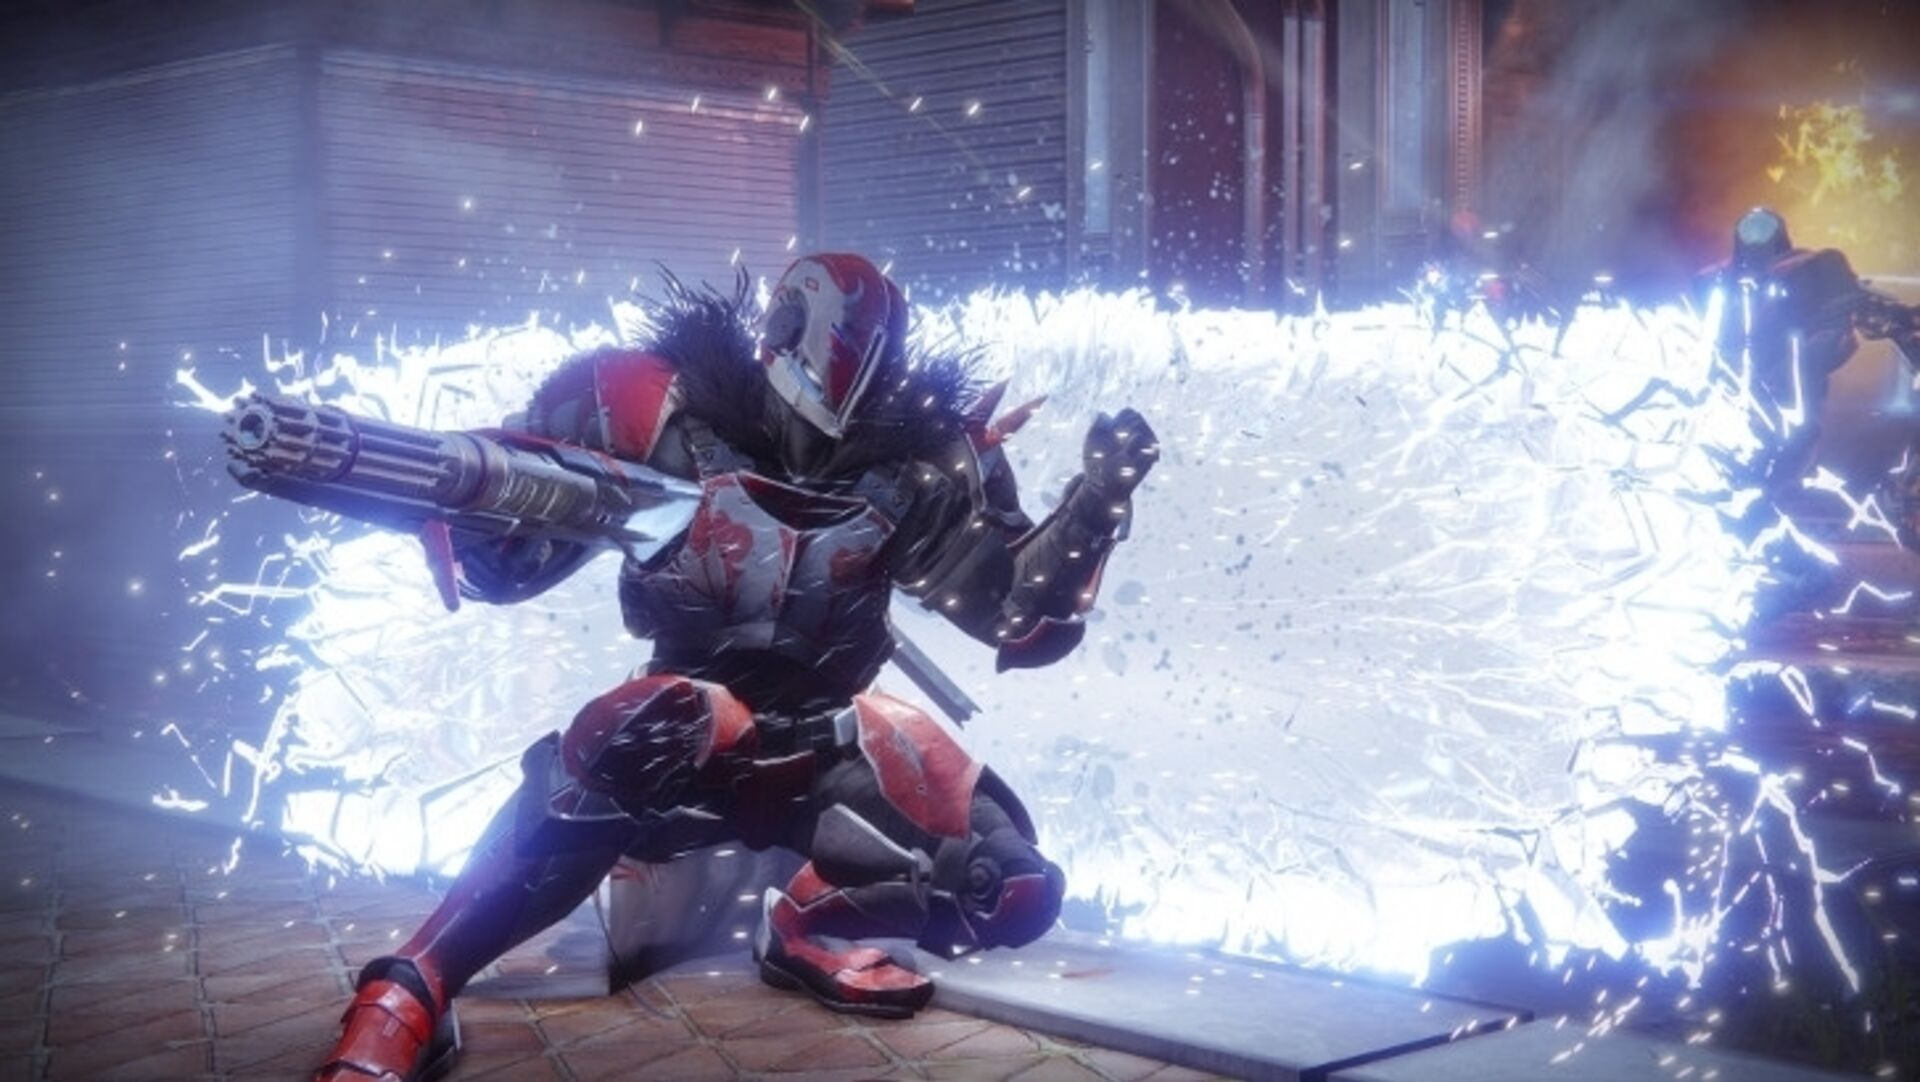 Core Destiny 2 to go free-to-play, leak reveals • Eurogamer net